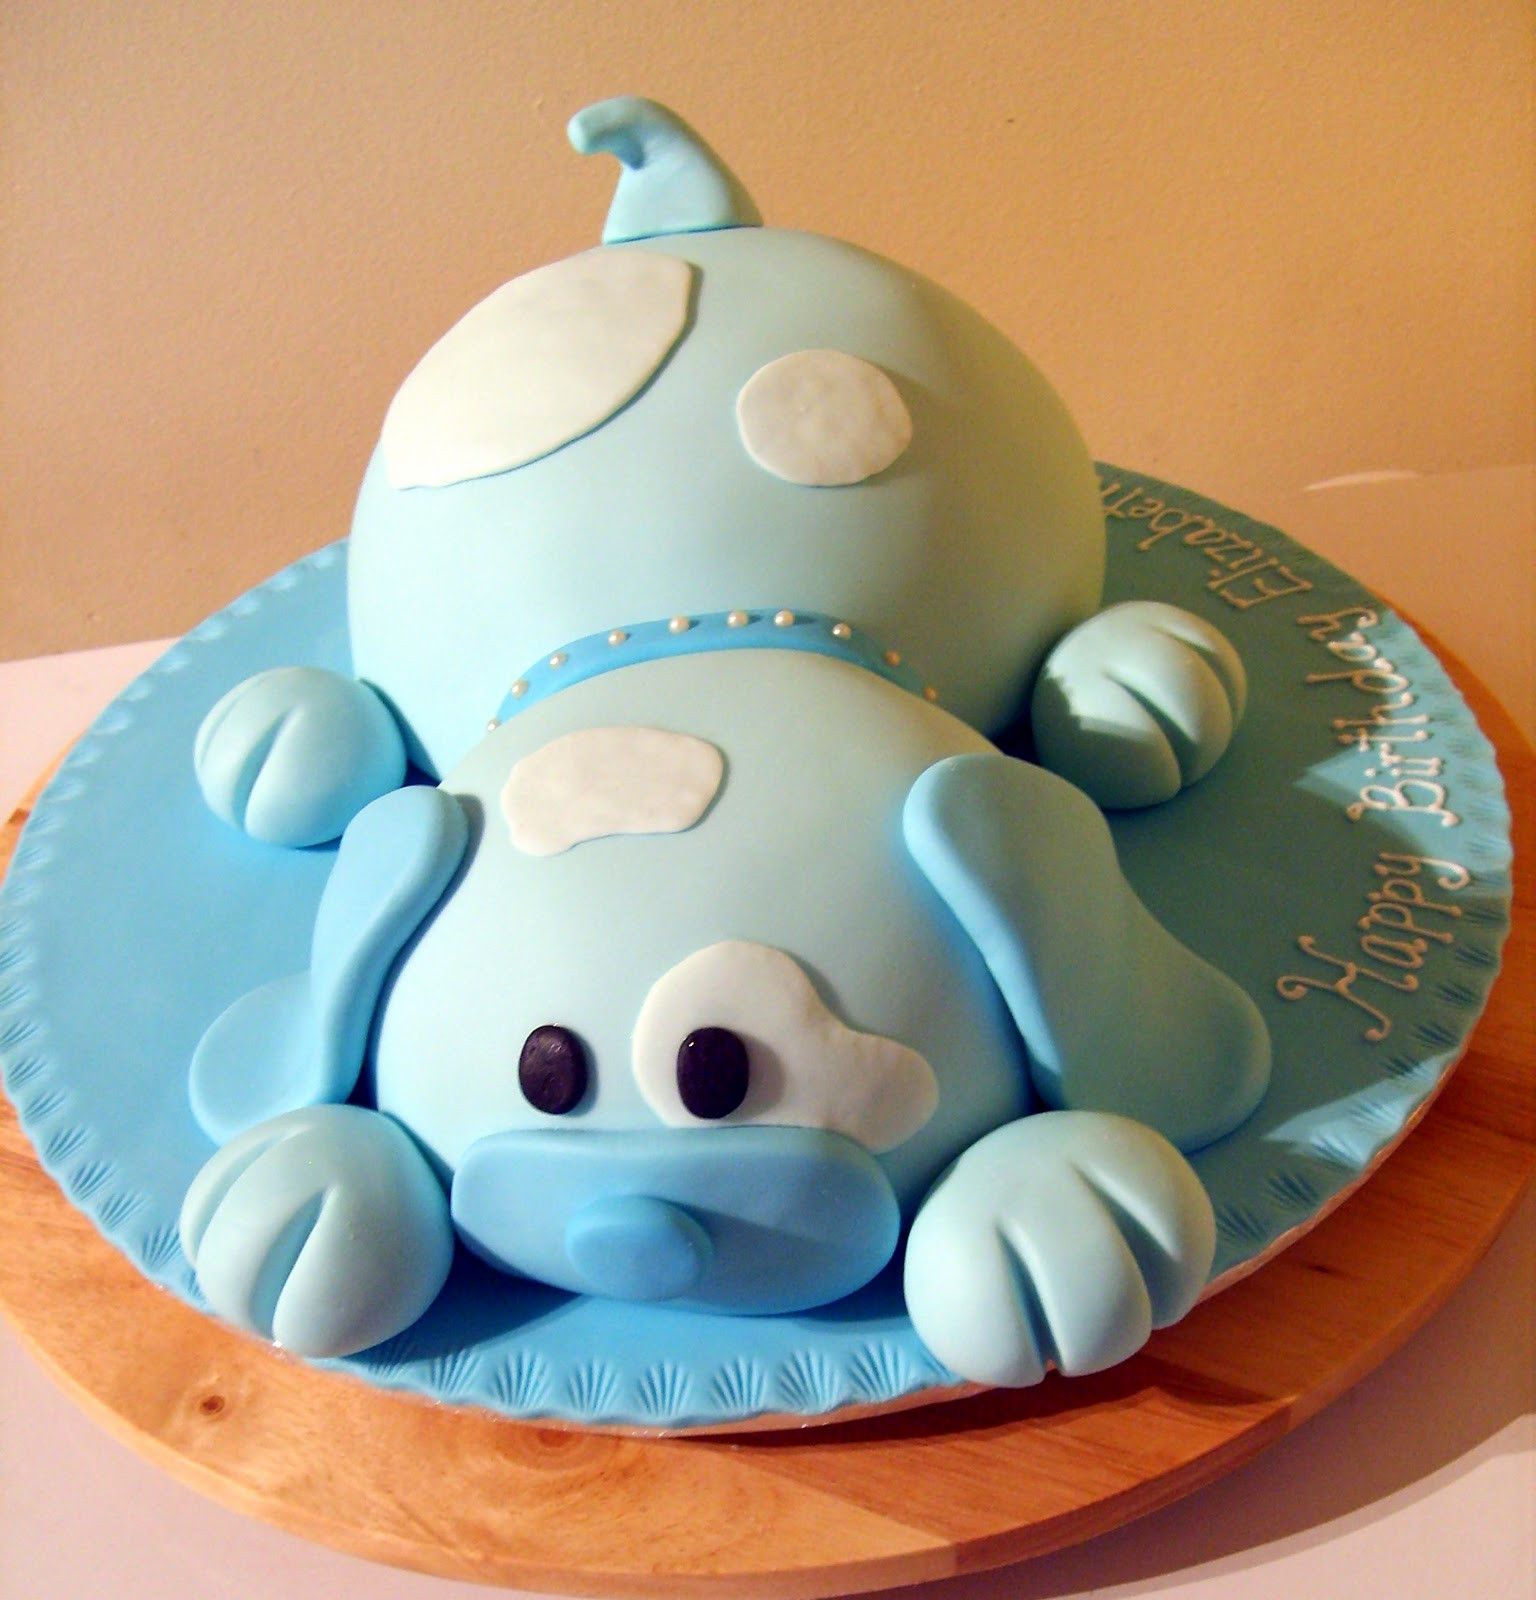 Best ideas about Dog Birthday Cake . Save or Pin Caketopia Puppy Dog Birthday cake for Elizabeth Now.